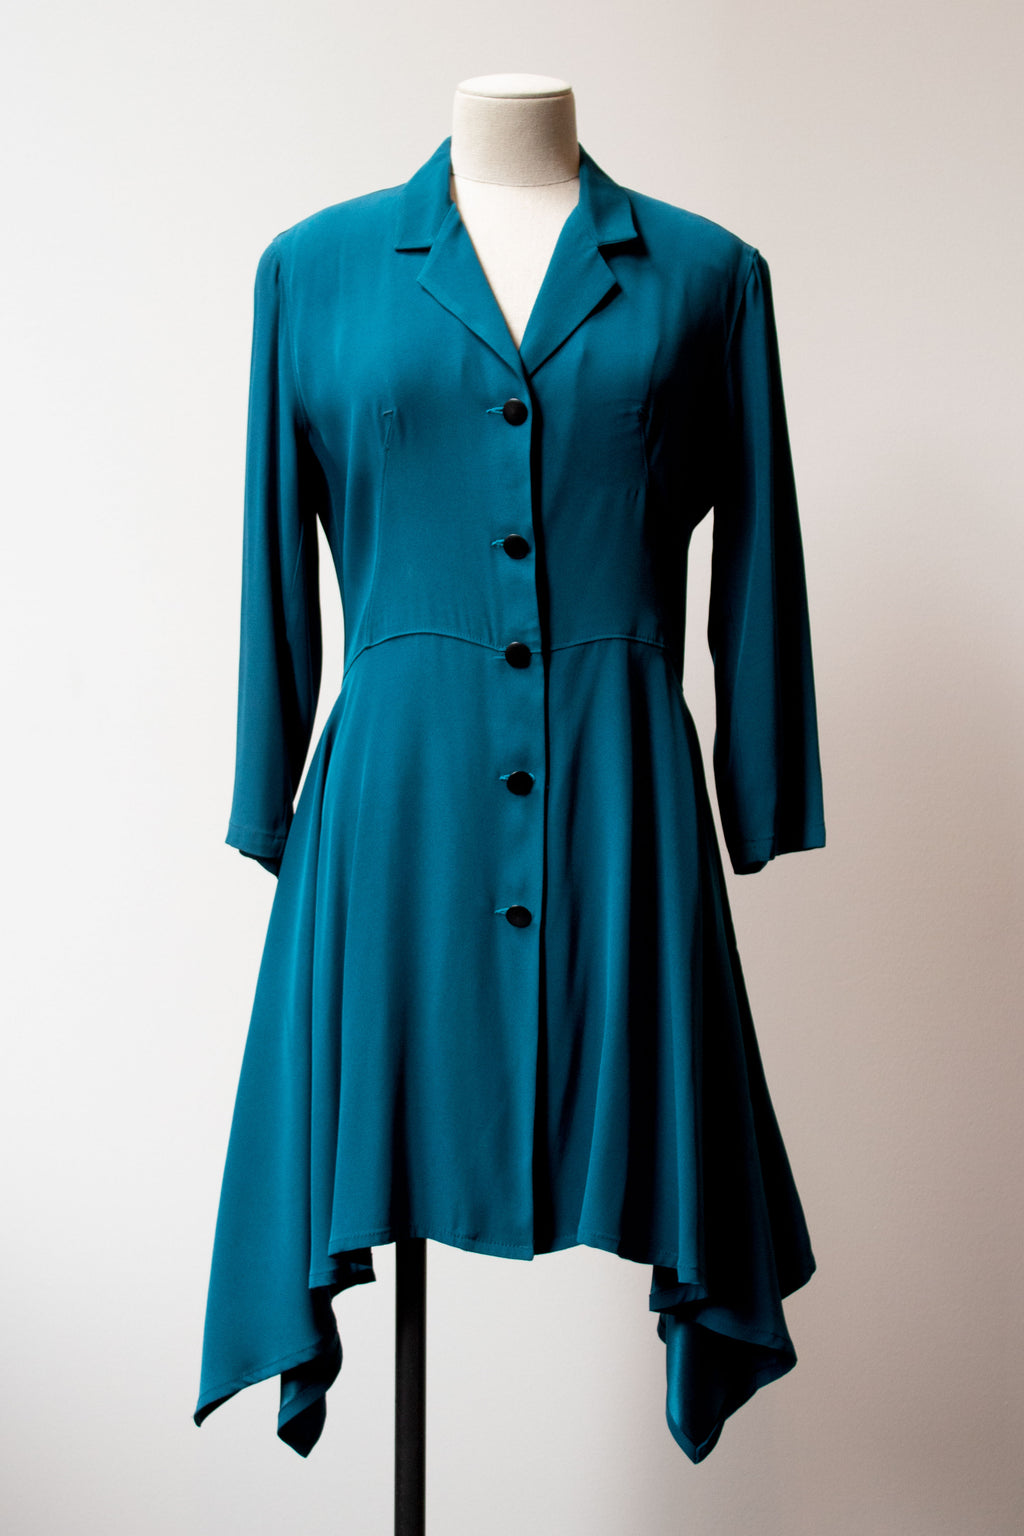 Jean Paul Gaultier teal shirt dress